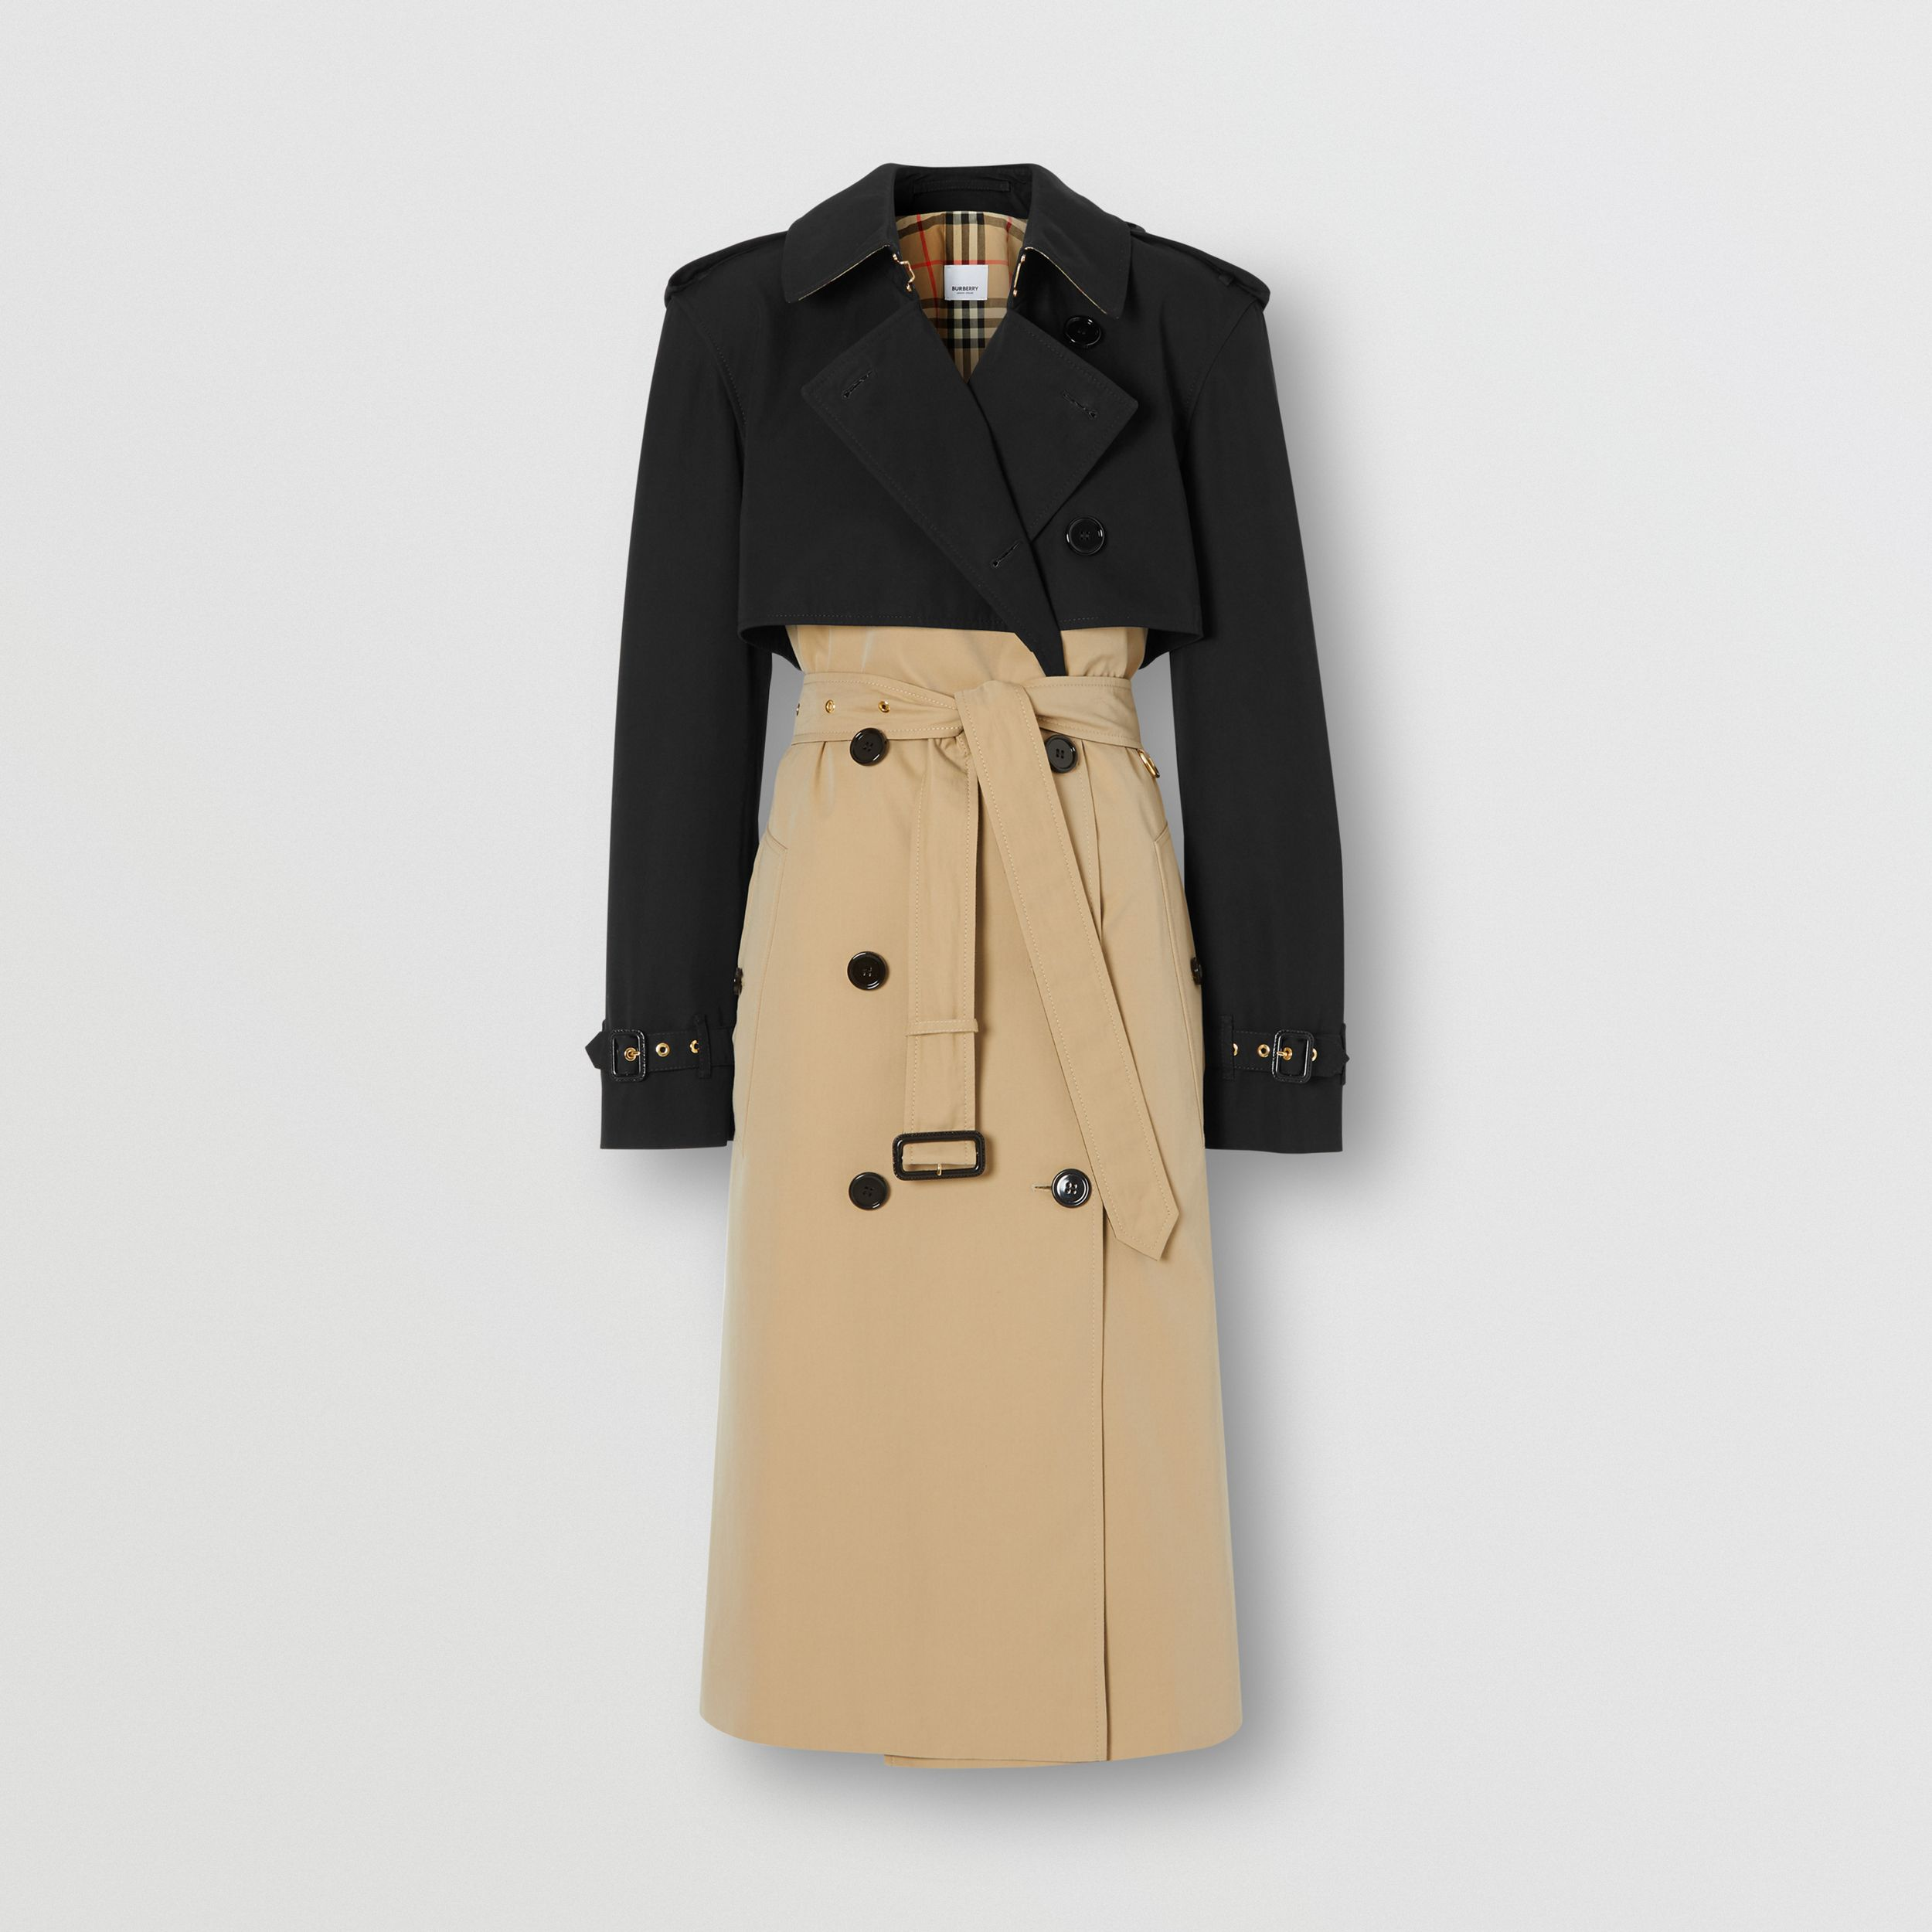 Two-tone Reconstructed Trench Coat in Black - Women | Burberry - 4